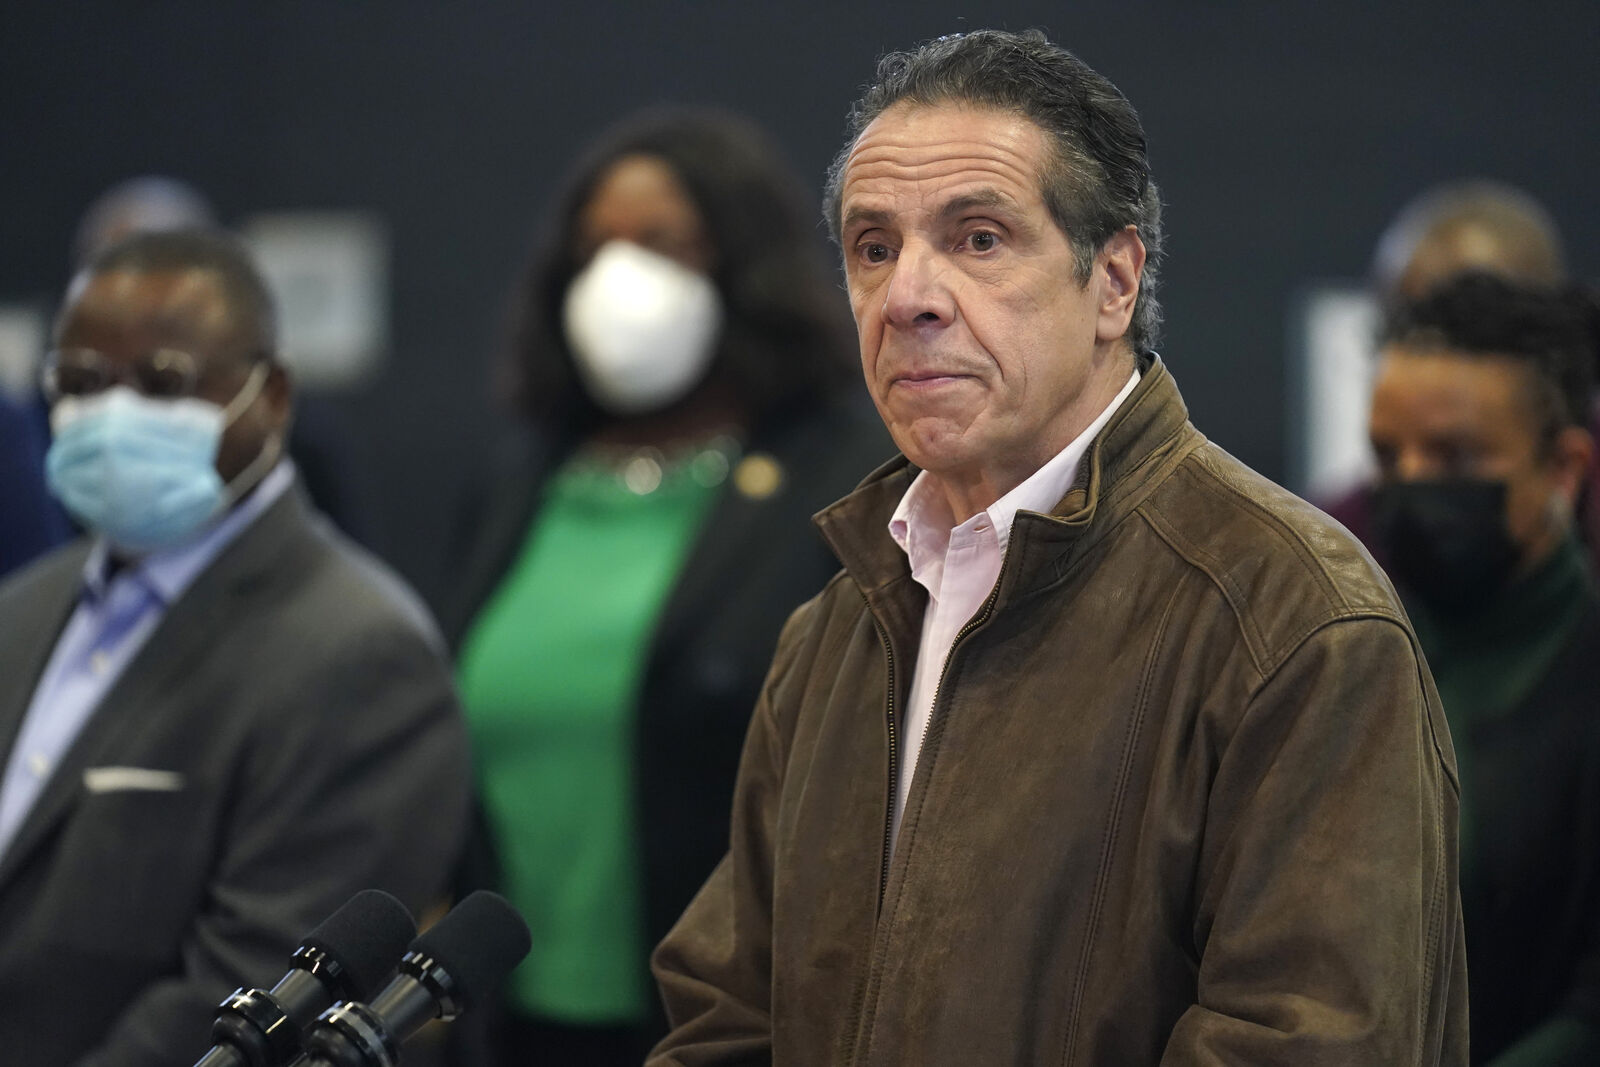 FILE - In this Feb. 22, 2021 photo, New York Gov. Andrew Cuomo, right, pauses to listen to a reporter's question during a news conference at a COVID-19 vaccination site in the Brooklyn borough of New York. (AP Photo/Seth Wenig, Pool, file)